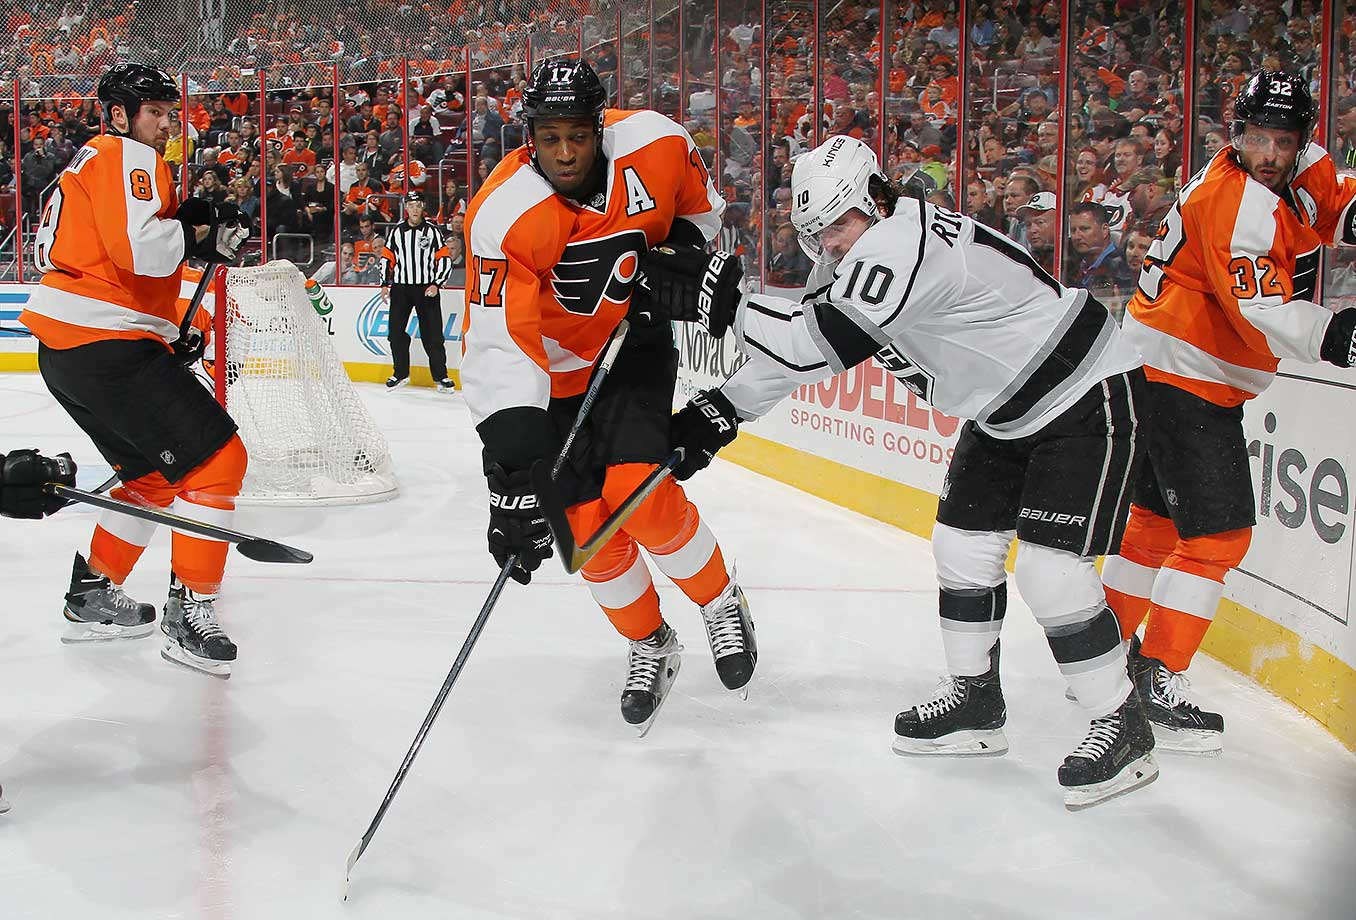 The Kings snagged Simmonds with the 61st pick in 2007 after their Feb. 26 deadline deal that sent Brent Sopel to Vancouver. His physical presence and commitment to two-way hockey made him a fan favorite and he caught the eyes of rival GMs, including Philadelphia's Paul Holmgren, who demanded the rugged power forward in exchange for Mike Richards at the 2011 draft. A high price to pay, but it helped the Kings win their first-ever Stanley Cup.